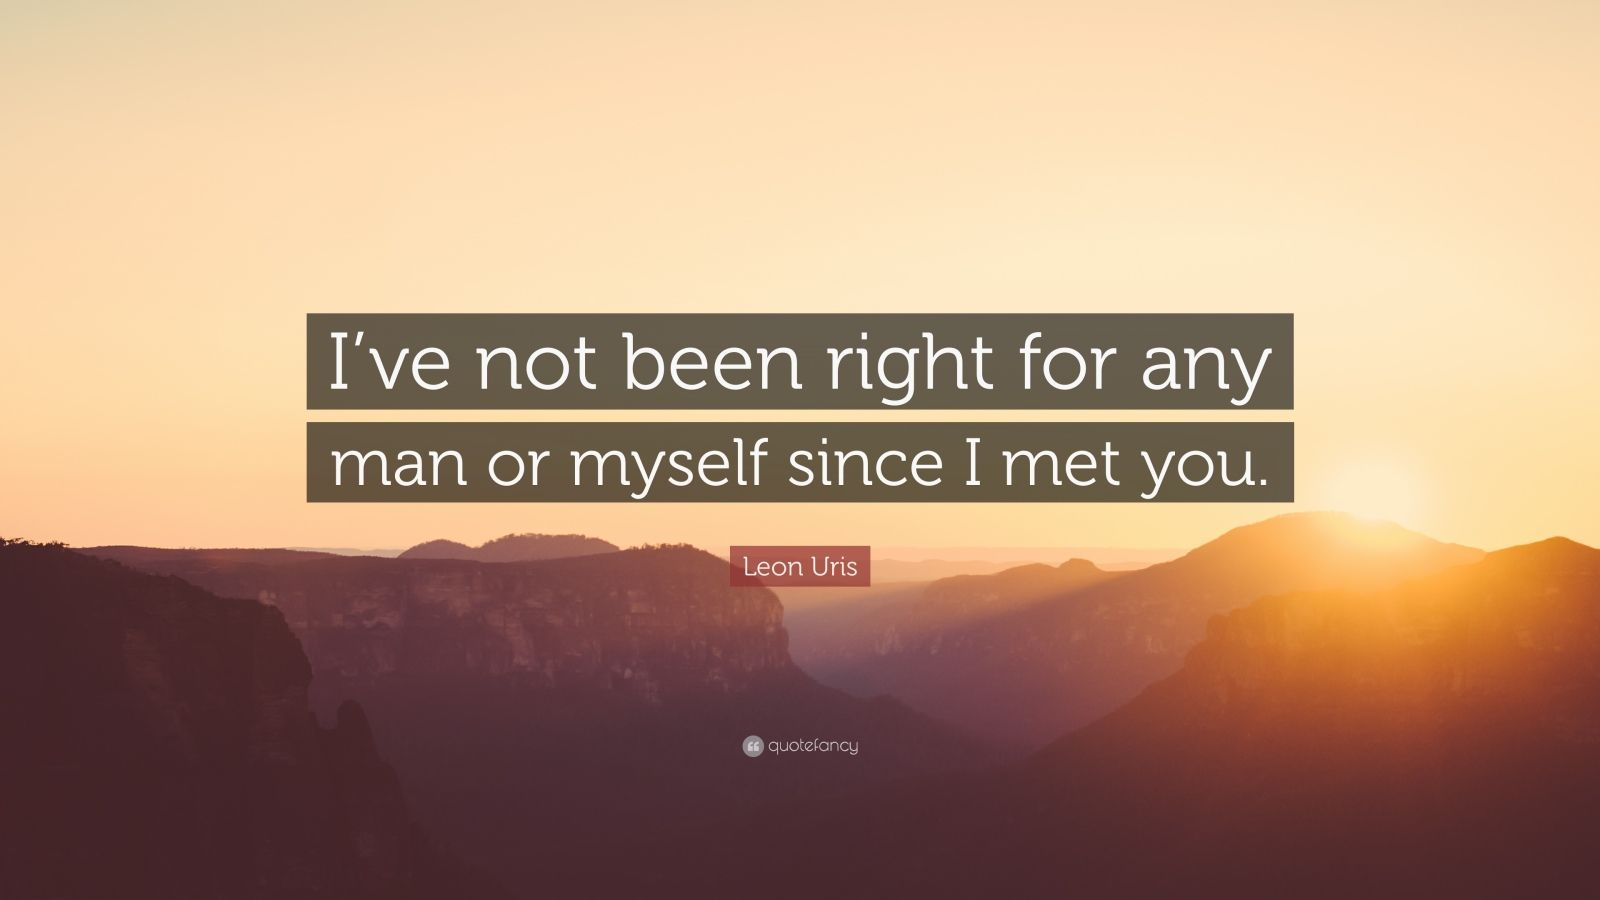 """Leon Uris Quote: """"I've not been right for any man or myself since I met you."""""""